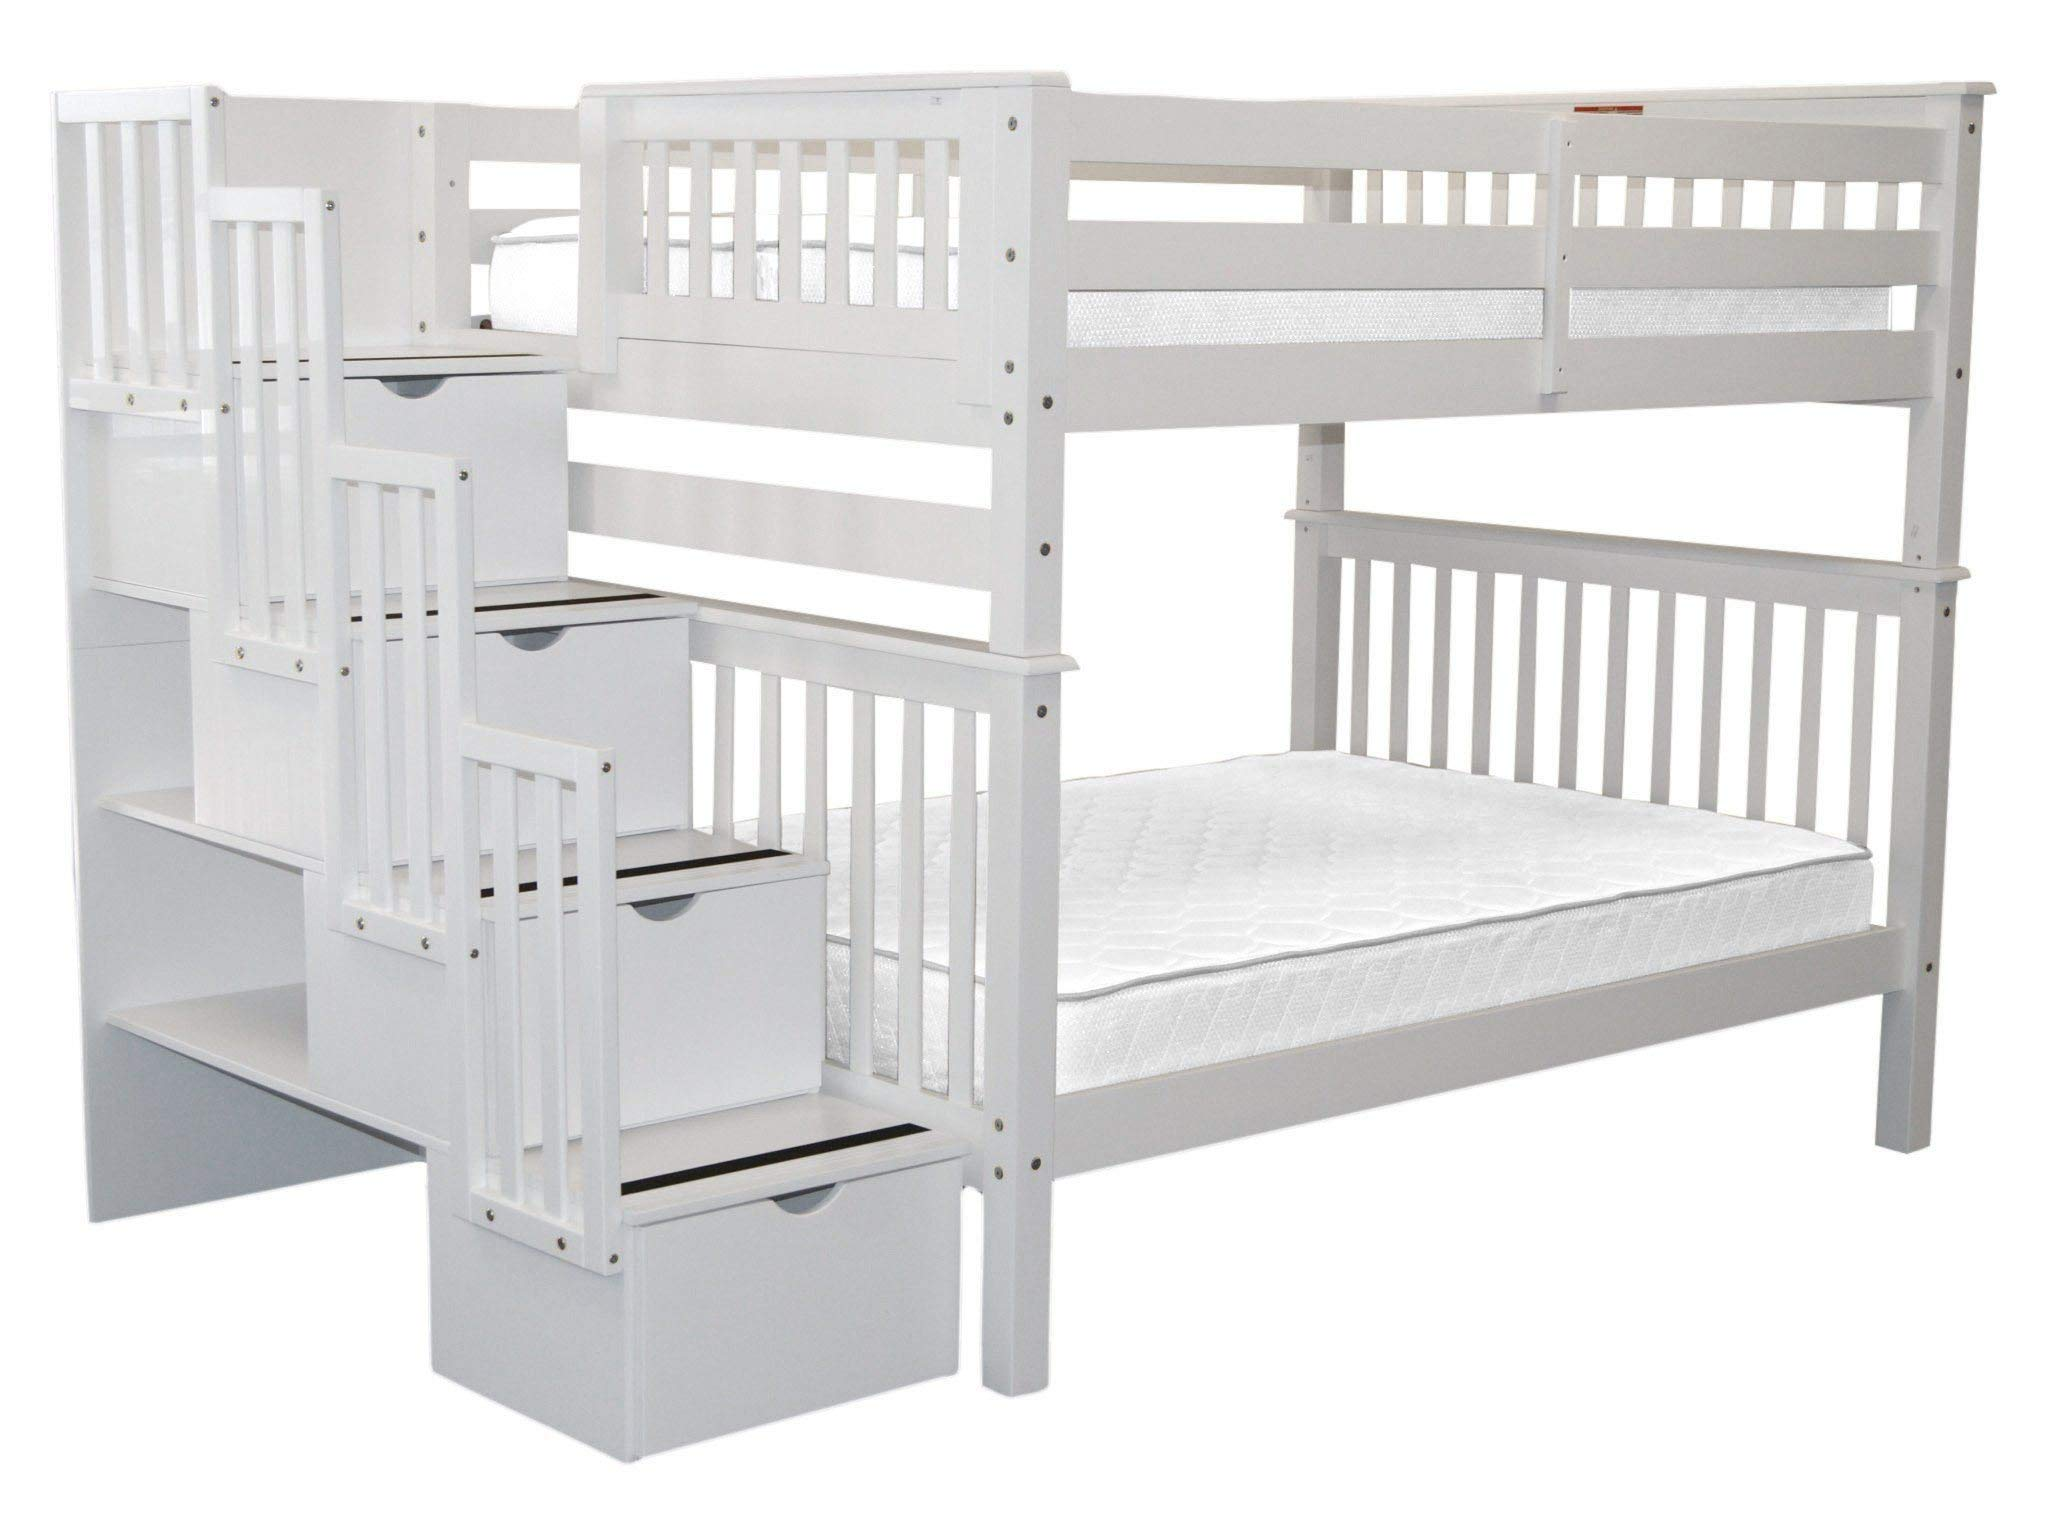 Bedz King Stairway Bunk Beds Full over Full with 4 Drawers in the Steps, White by Bedz King